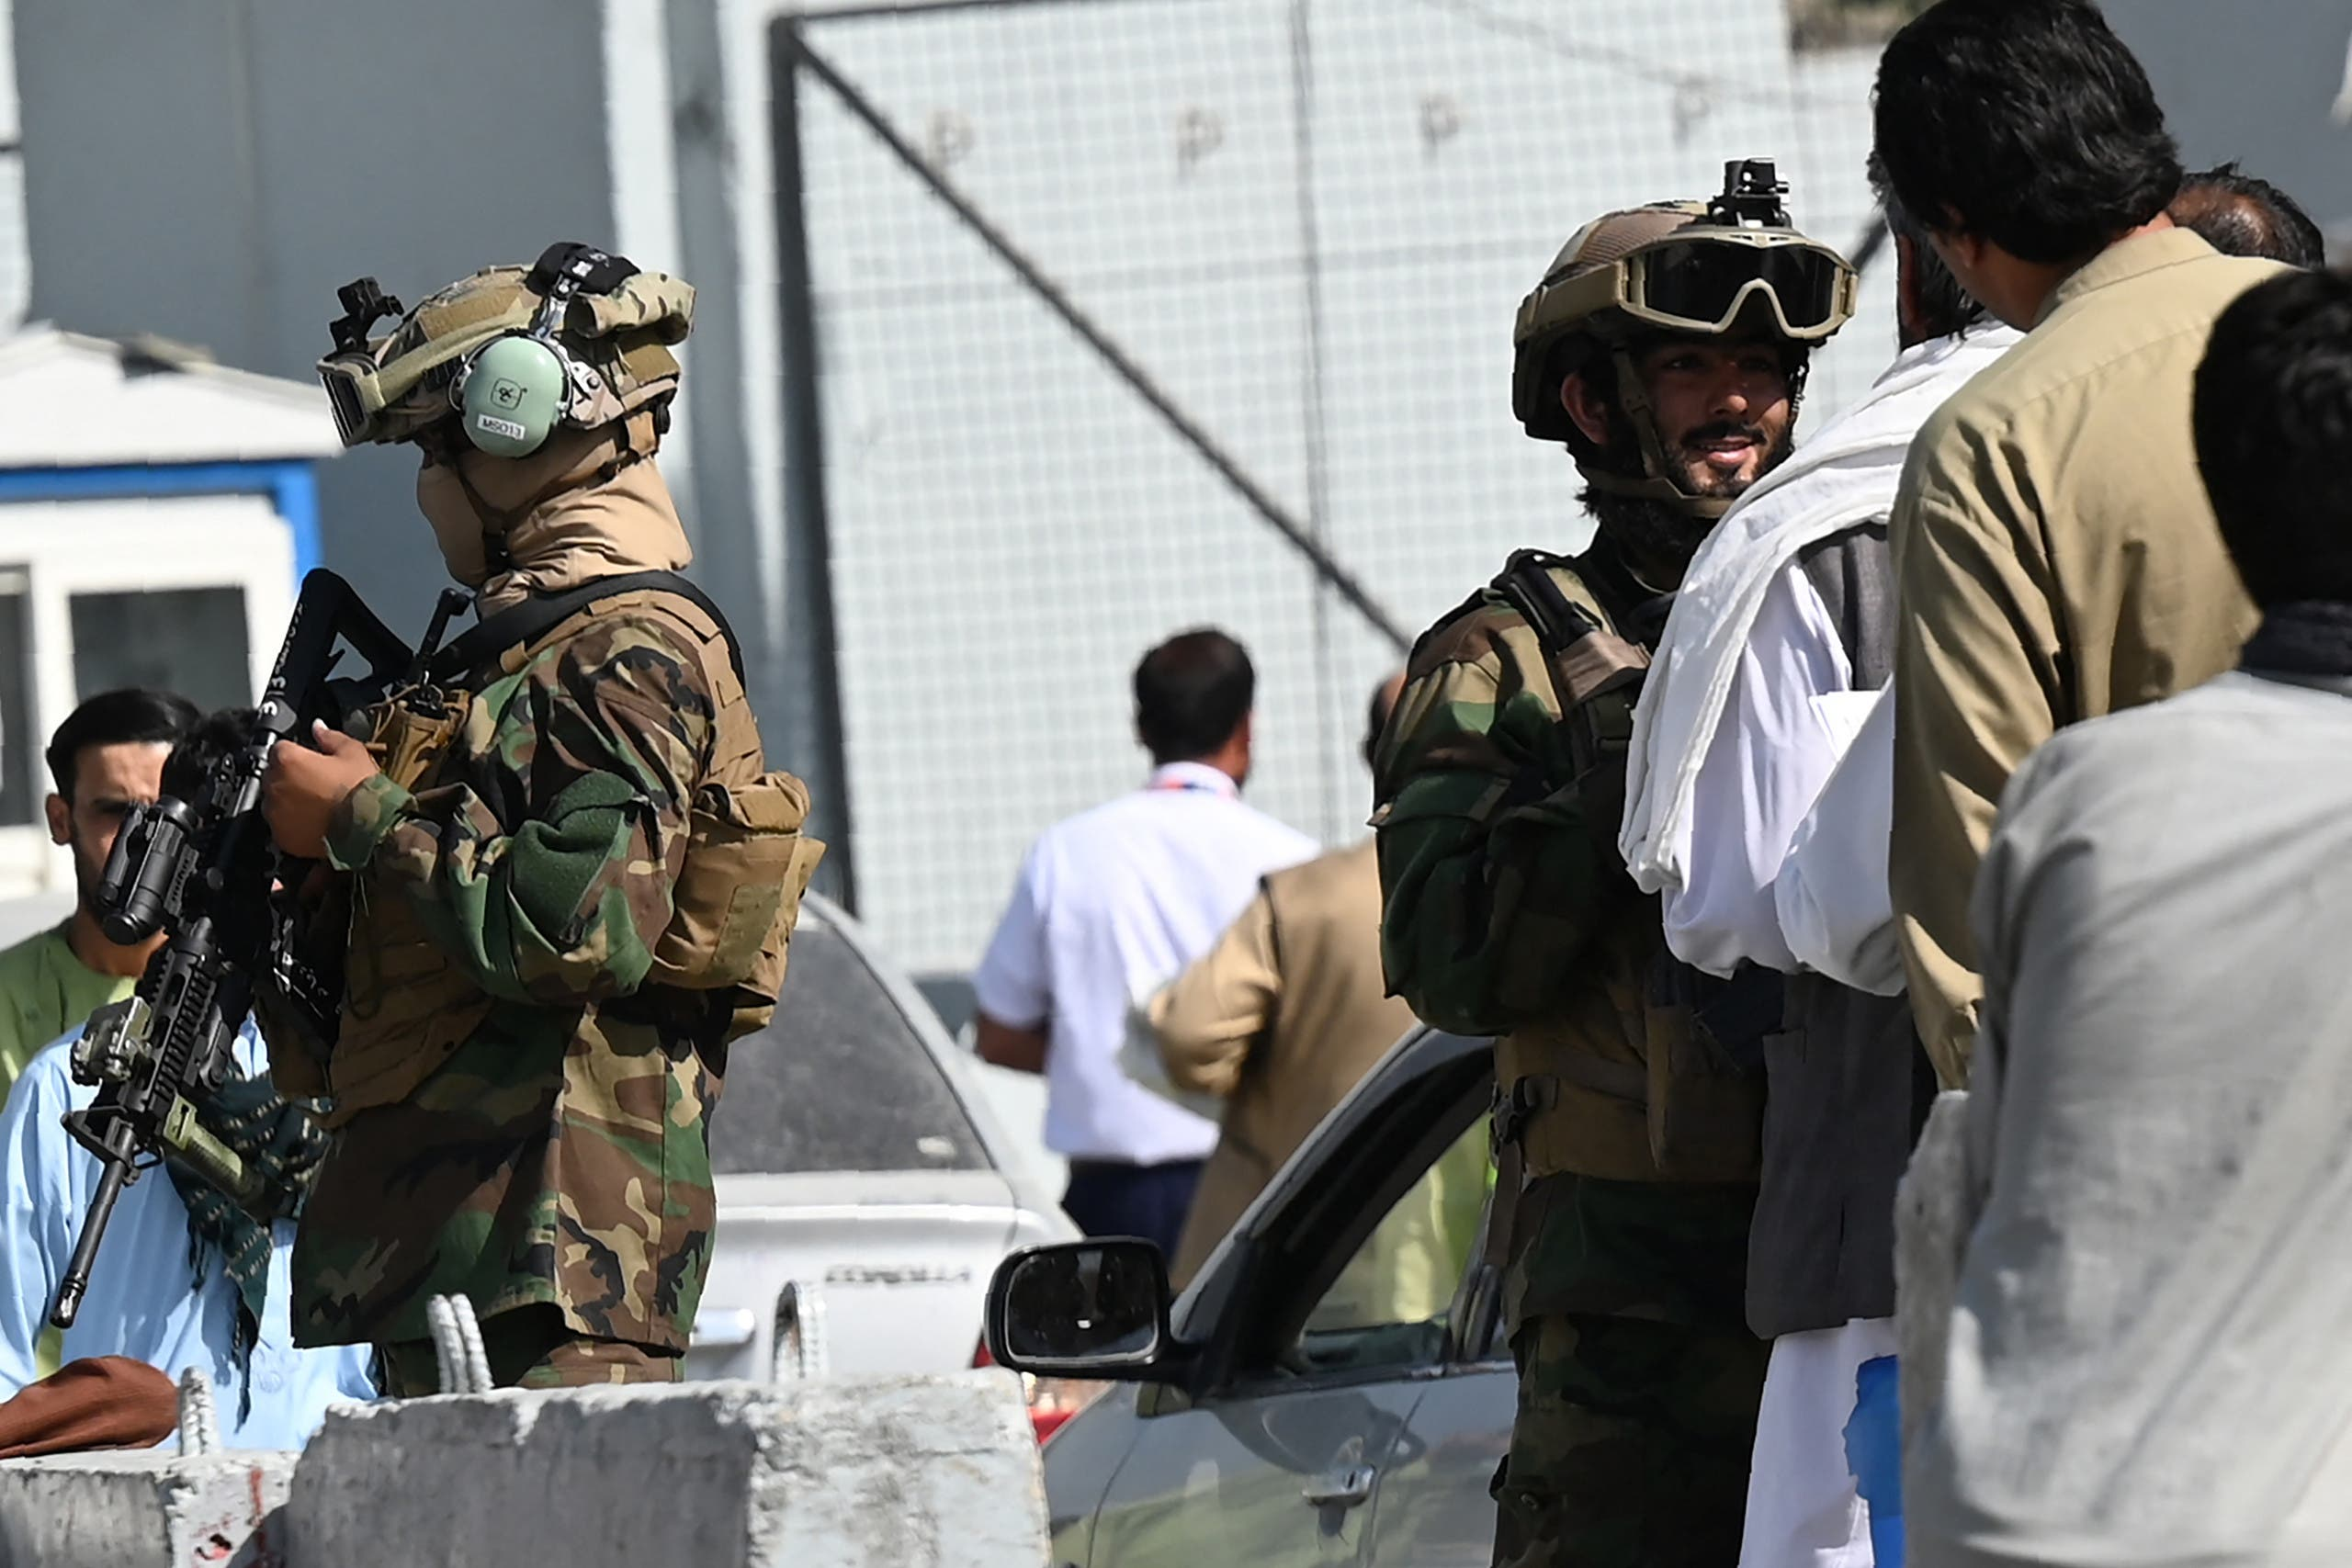 Yesterday, Saturday, Taliban elements search the participants at the Kabul airport